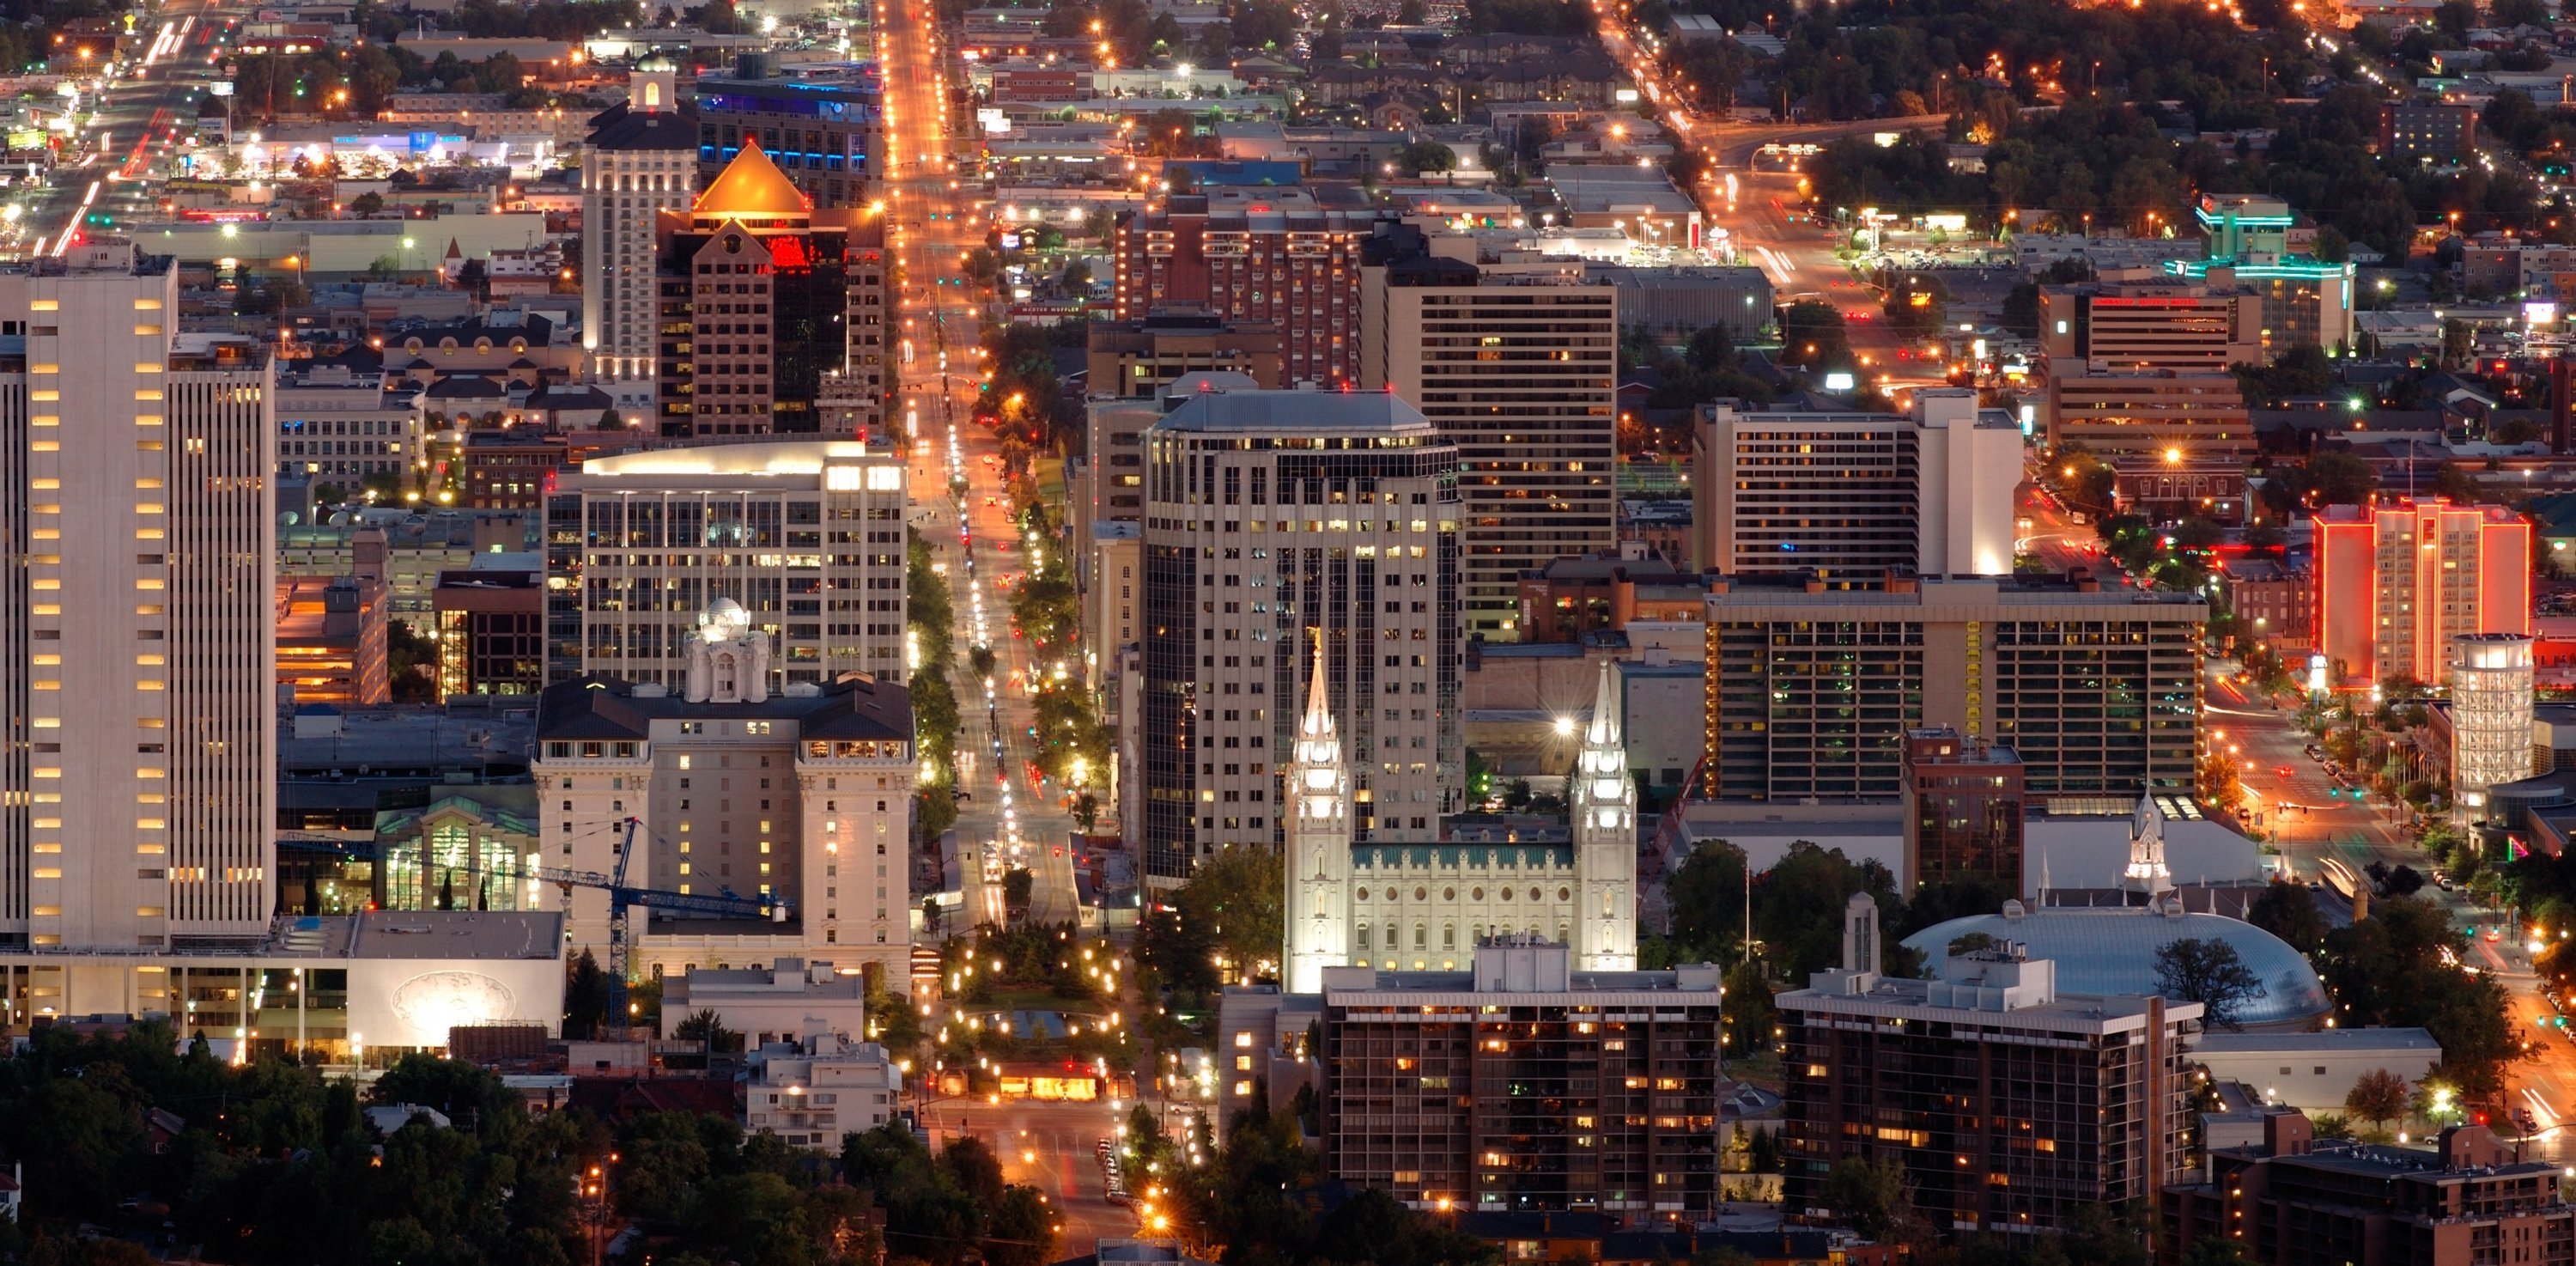 10 Most Popular Date Ideas Salt Lake City what to know when coming to salt lake city temple square 2021